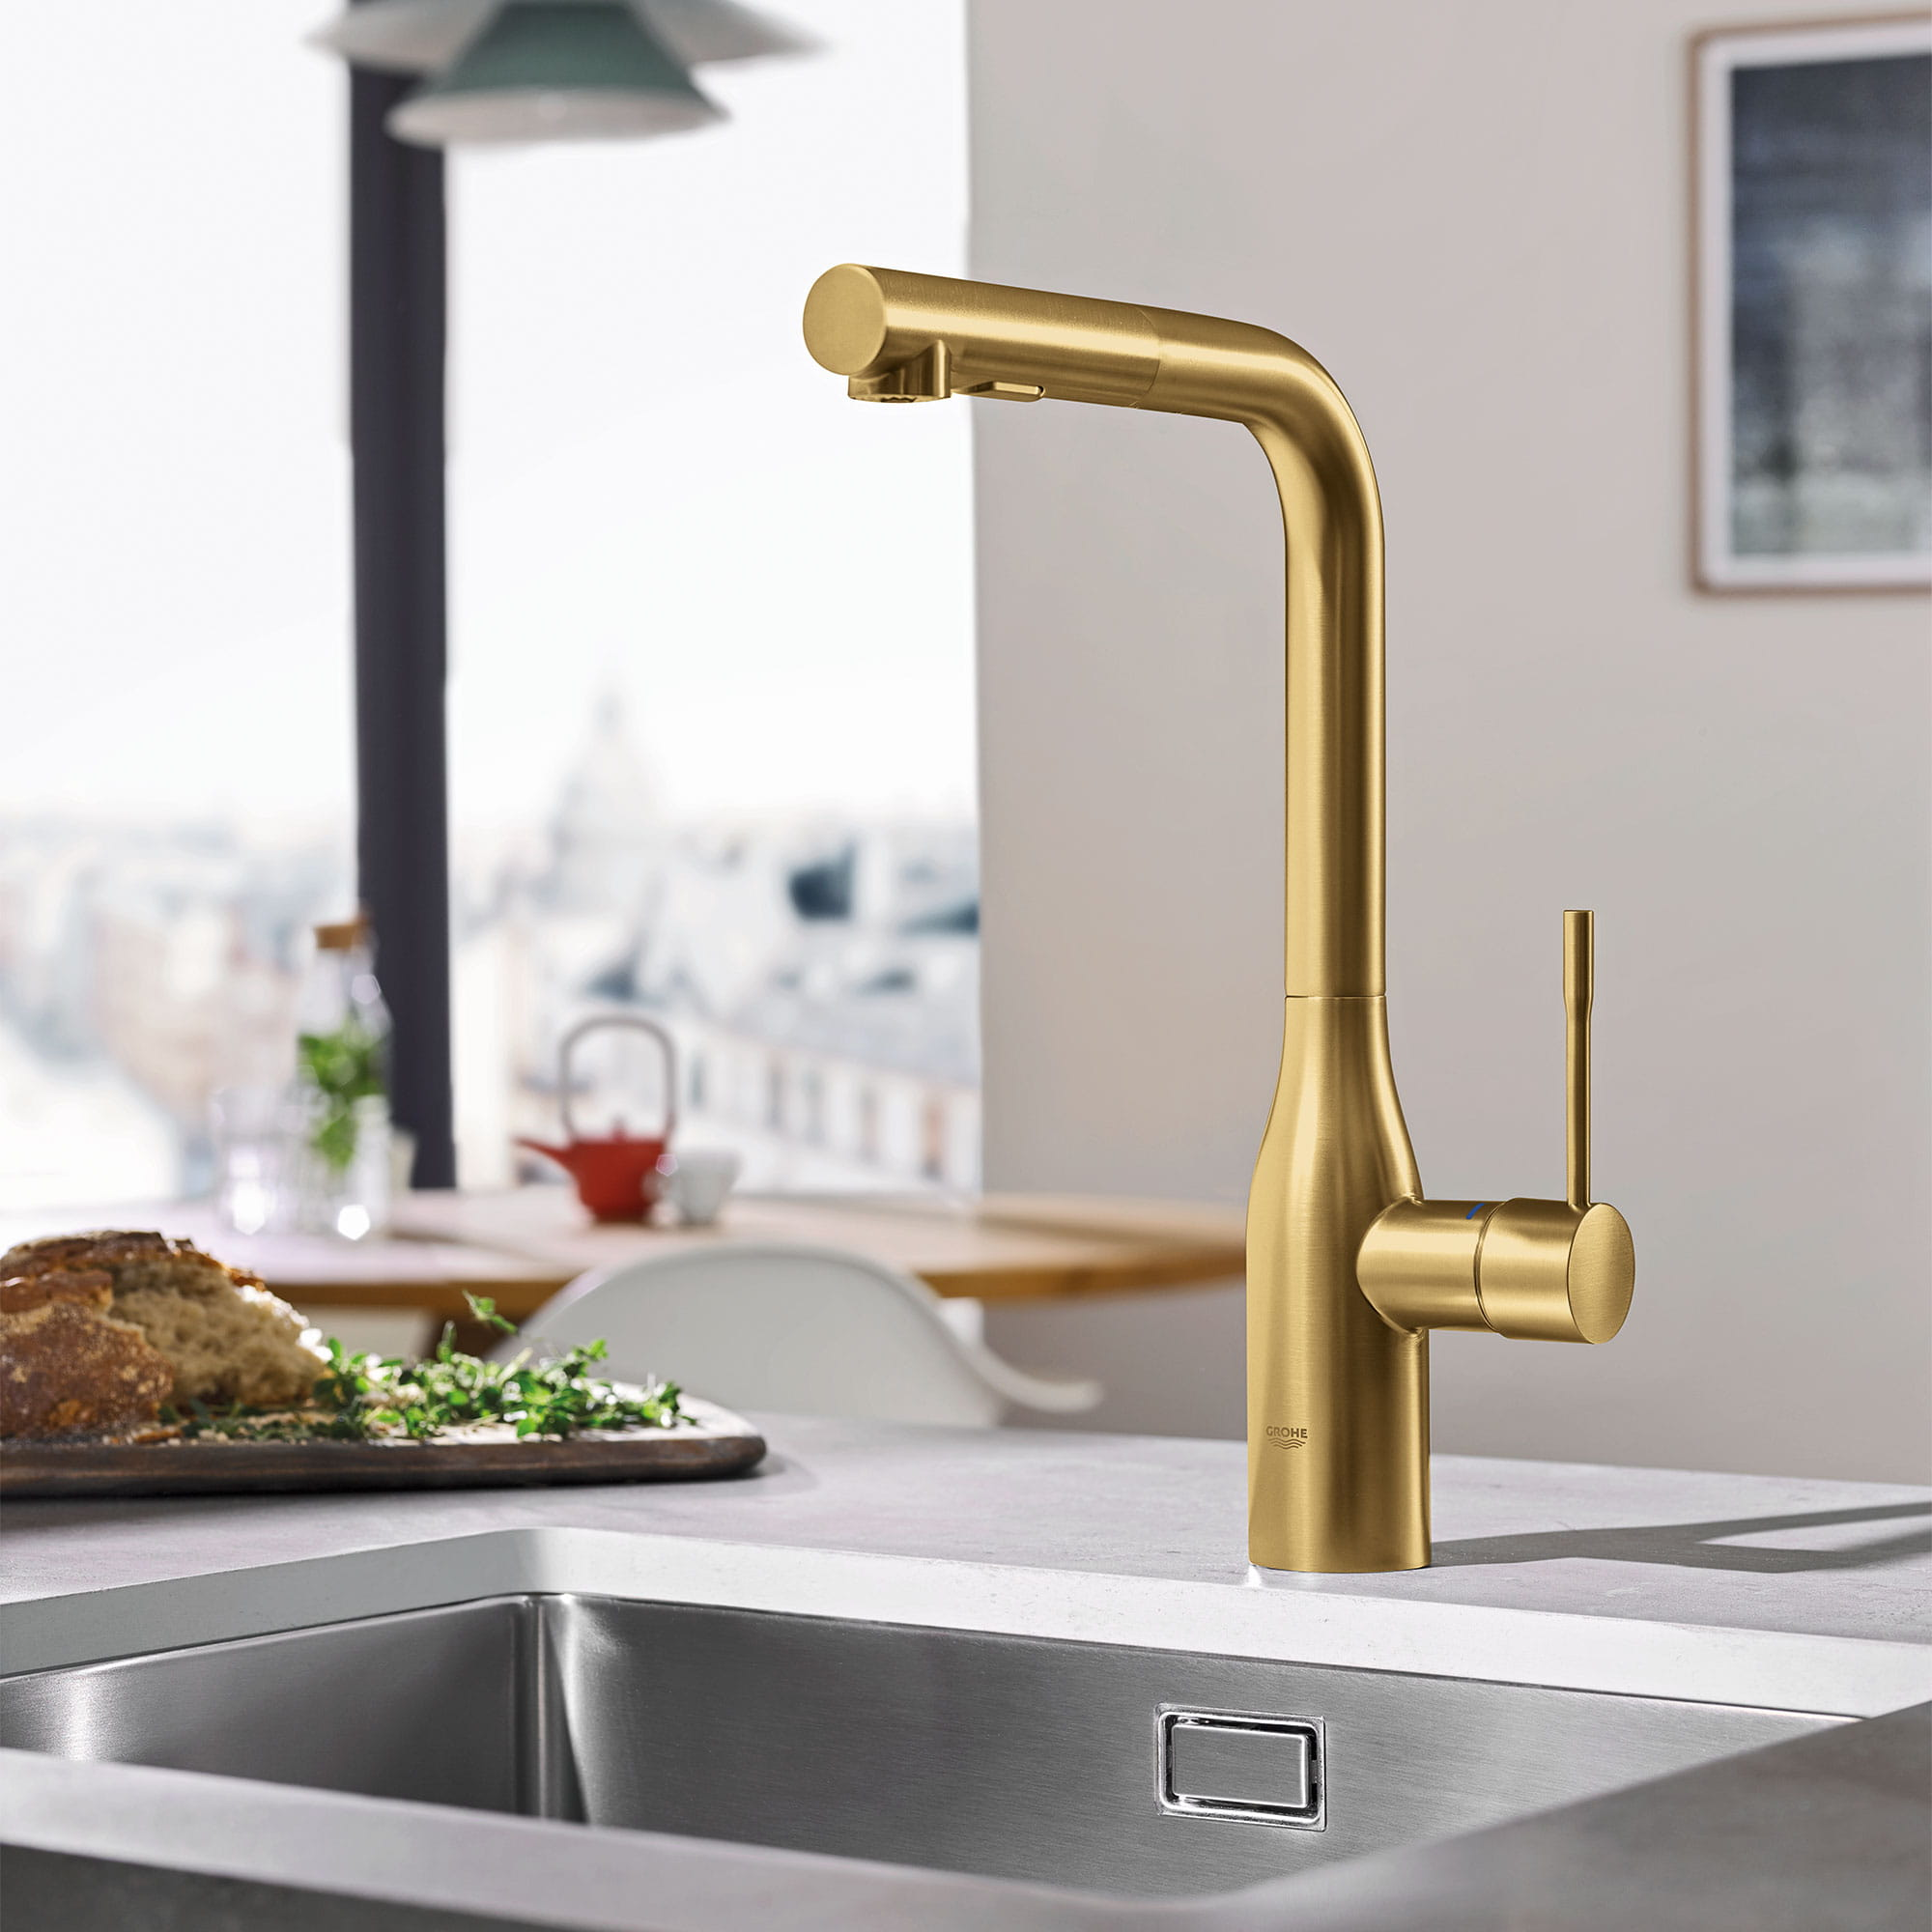 Essence Kitchen Faucet in Gold